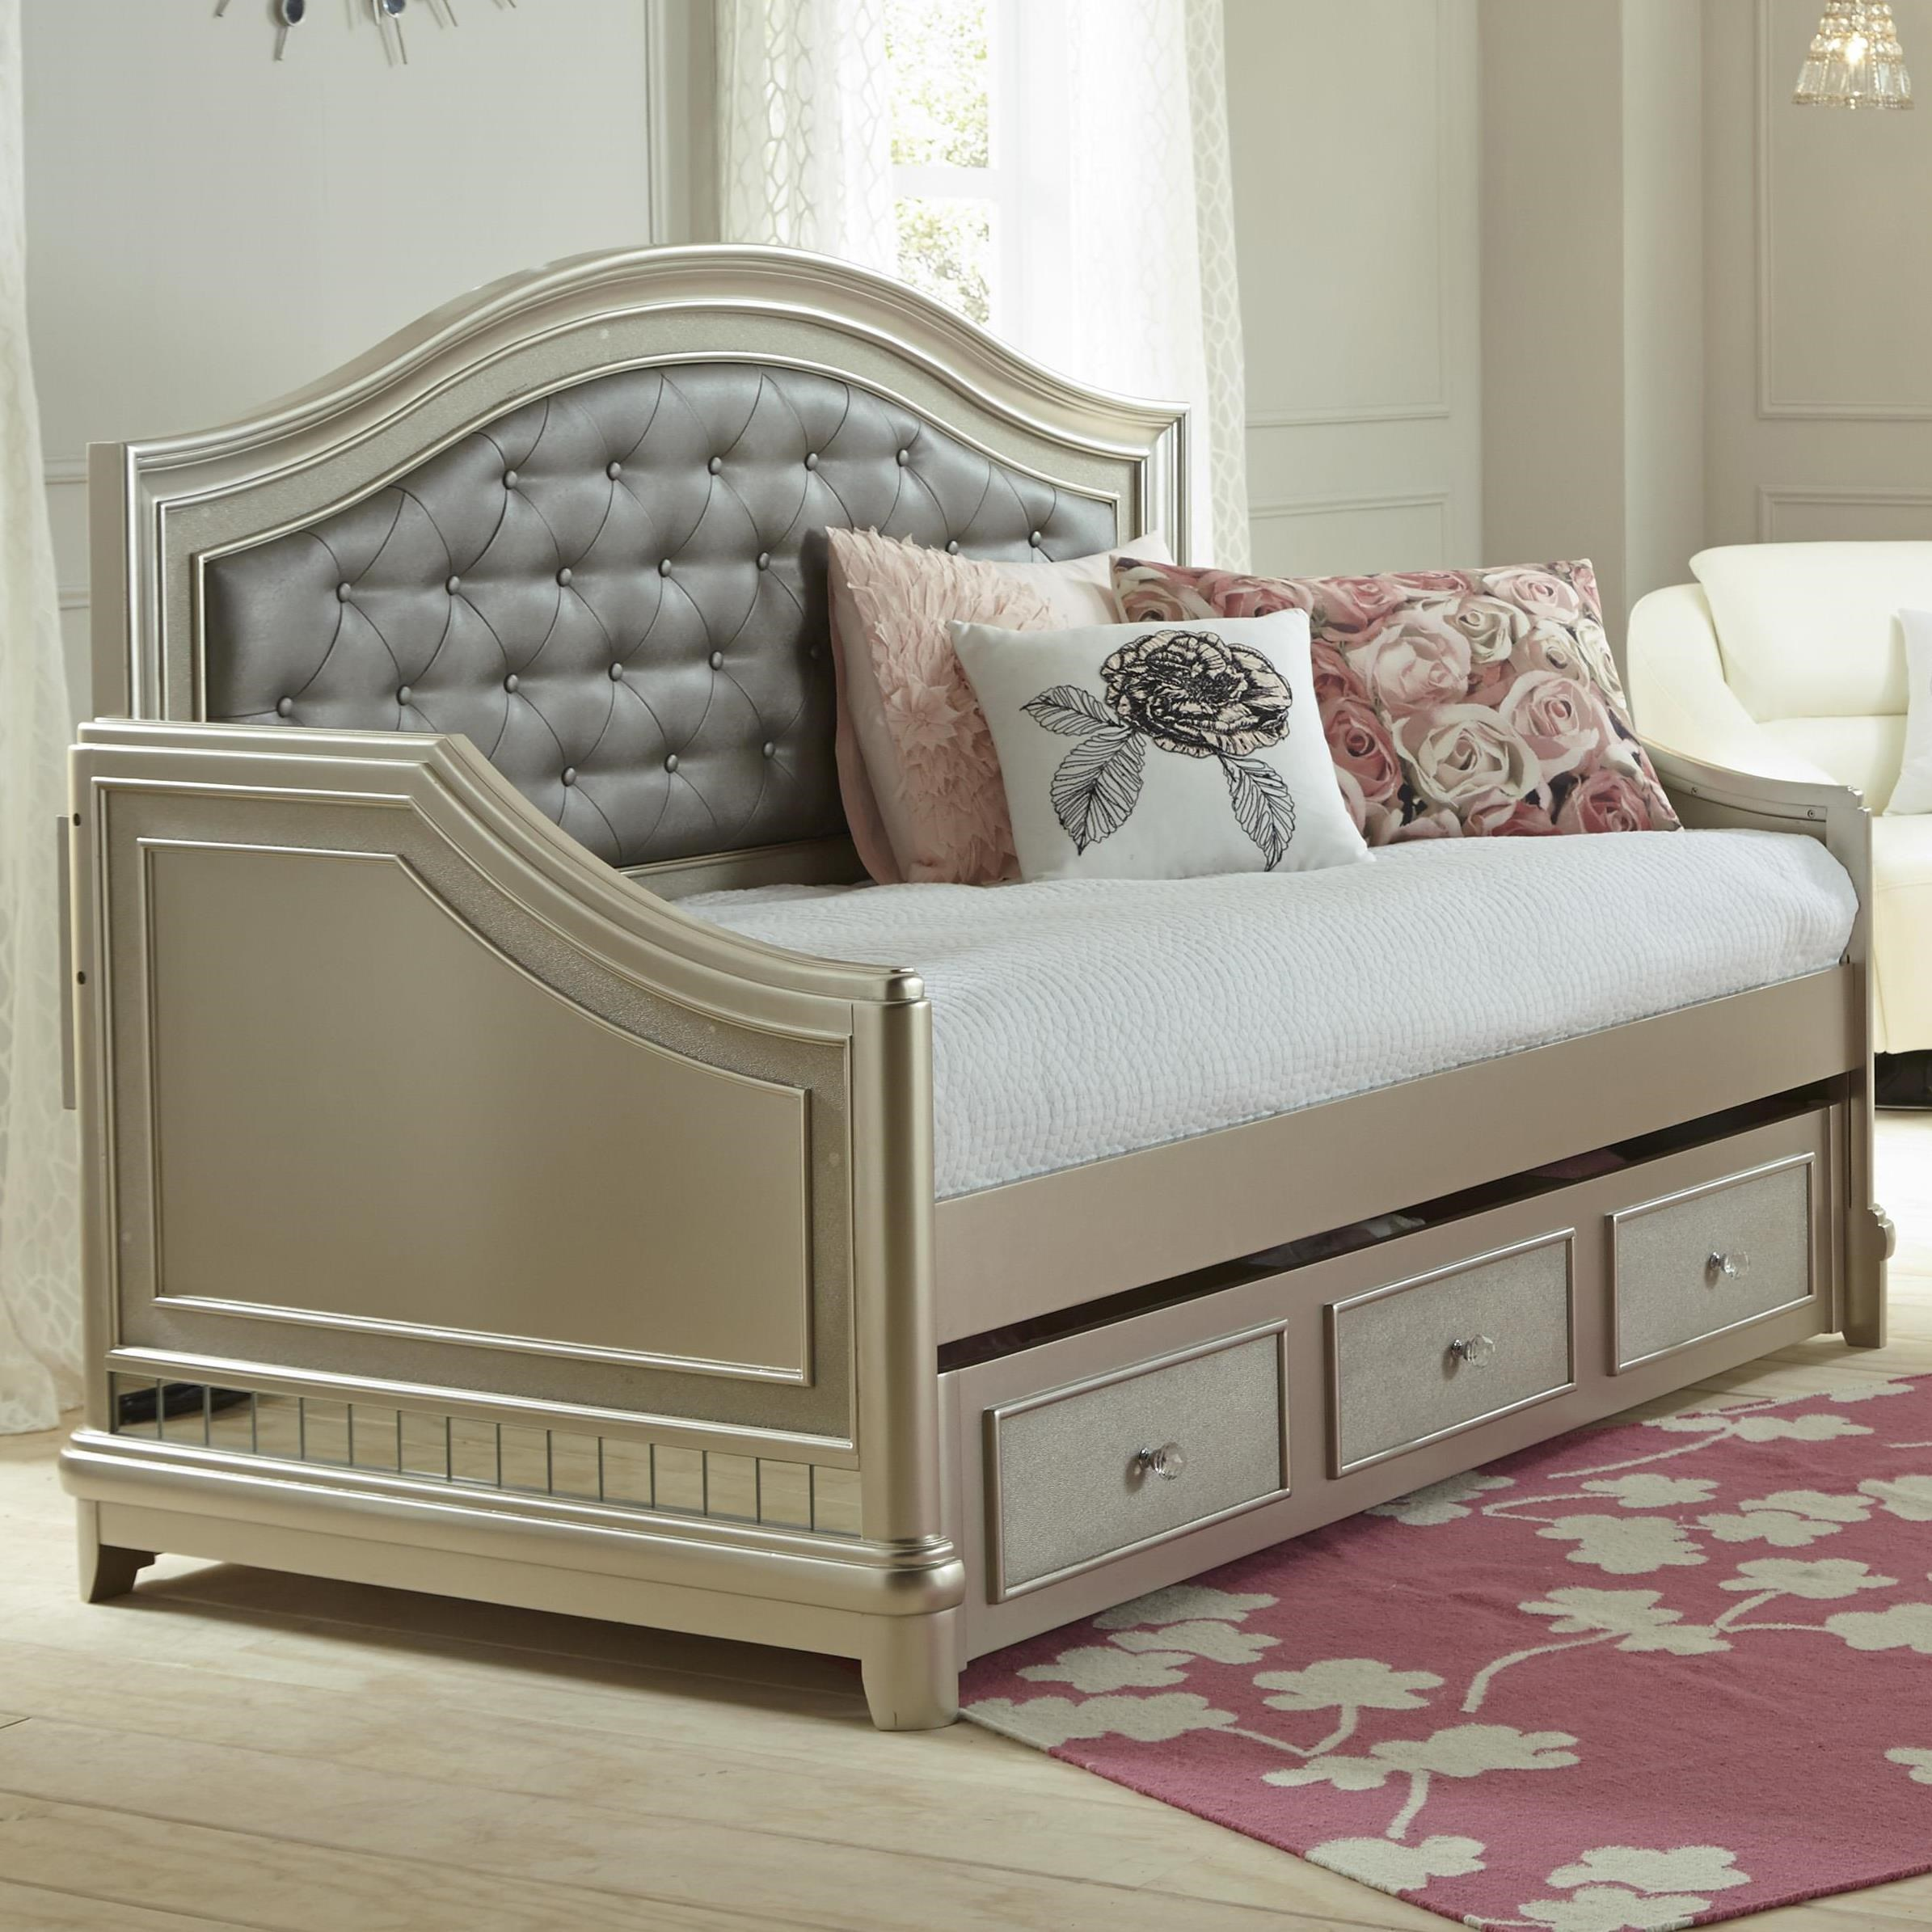 daybed with trundle. Samuel Lawrence Lil Diva Tufted Daybed W/ Trundle With